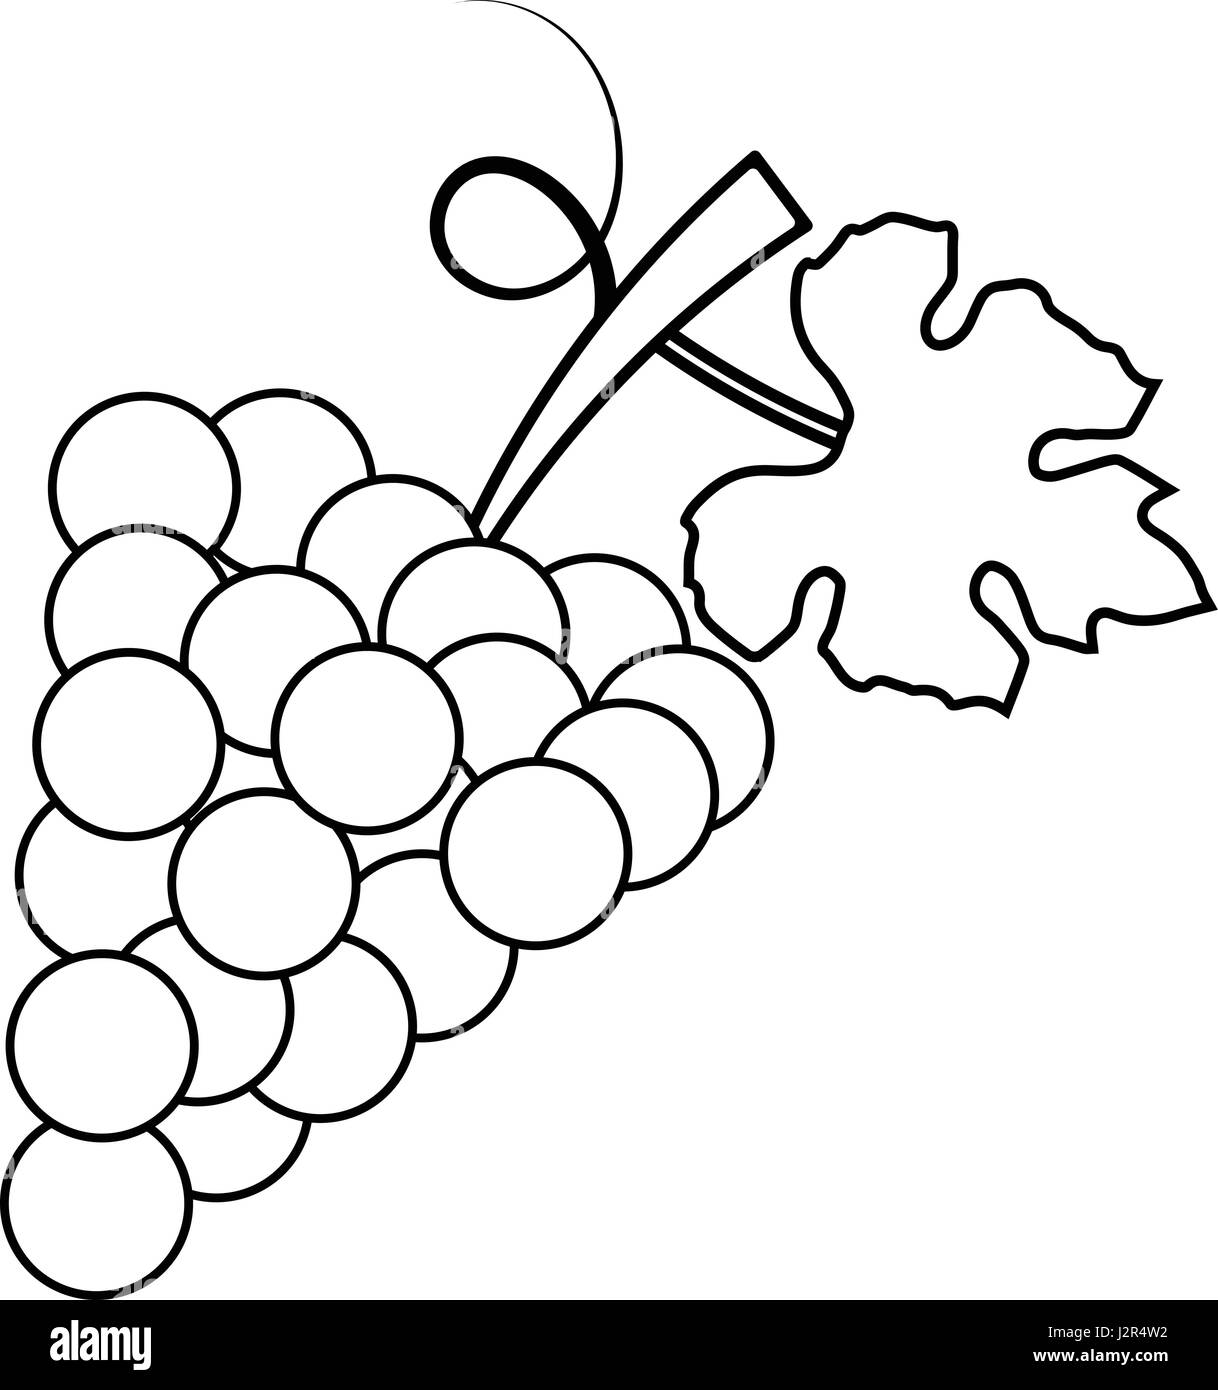 Bunch Of Grapes Black and White Stock Photos & Images - Alamy